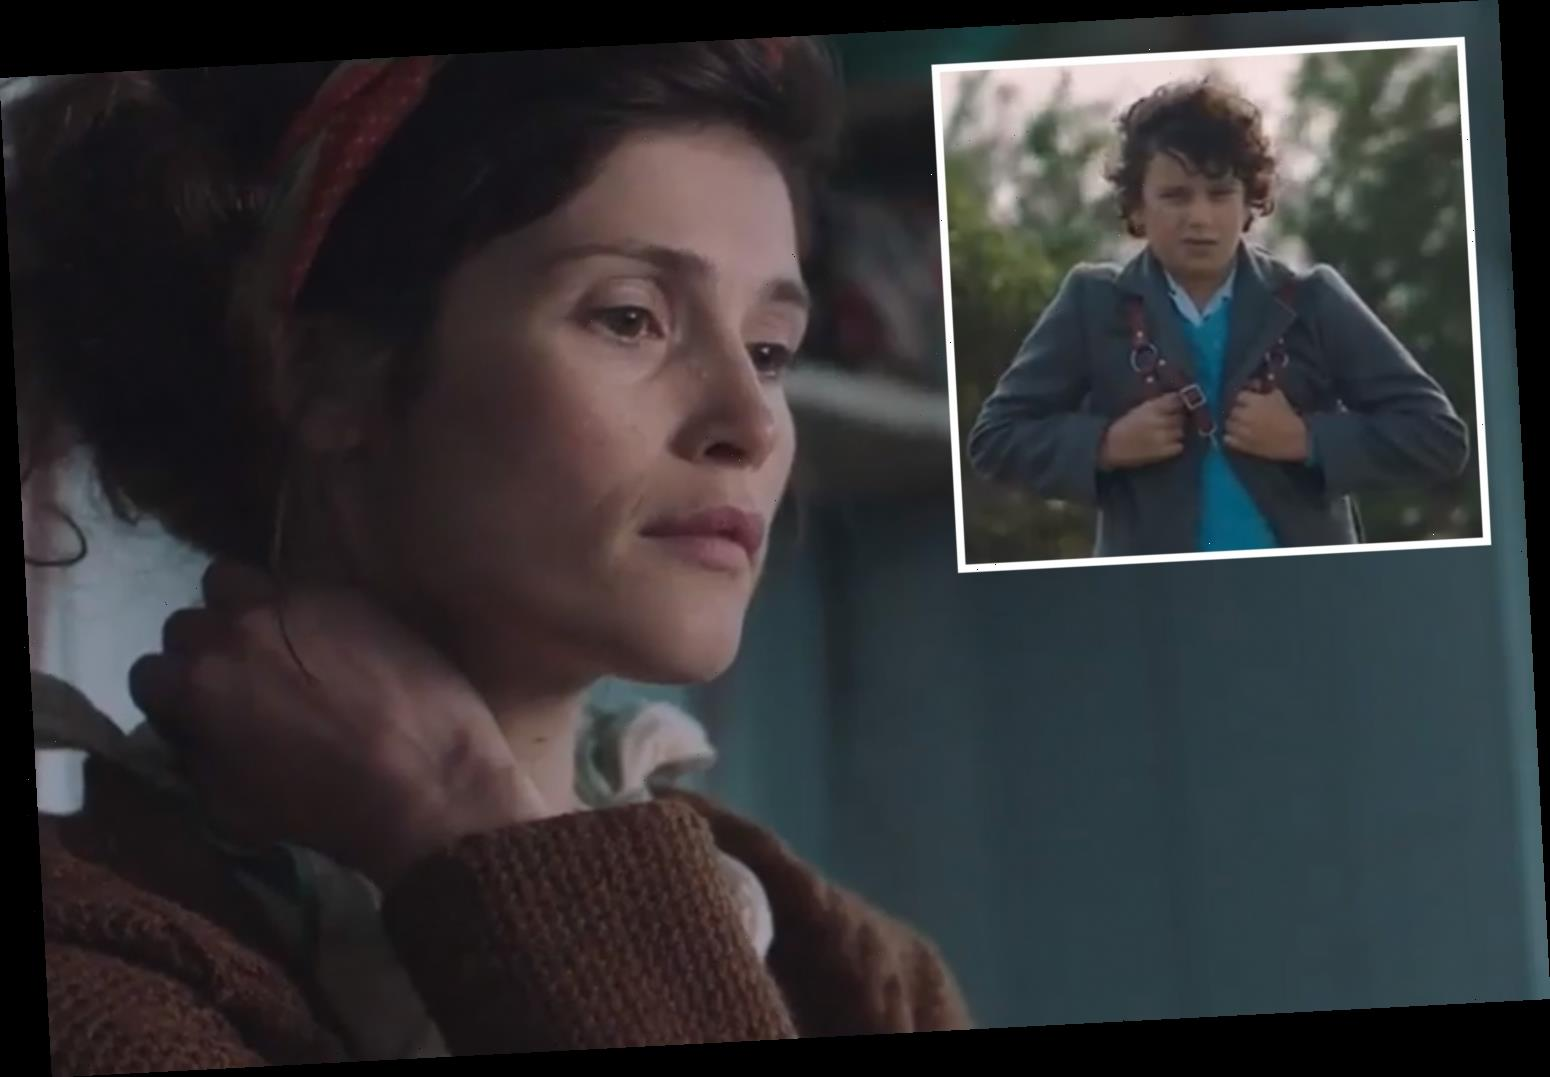 Gemma Arterton leaves fans in tears as first trailer for movie Summerland is released